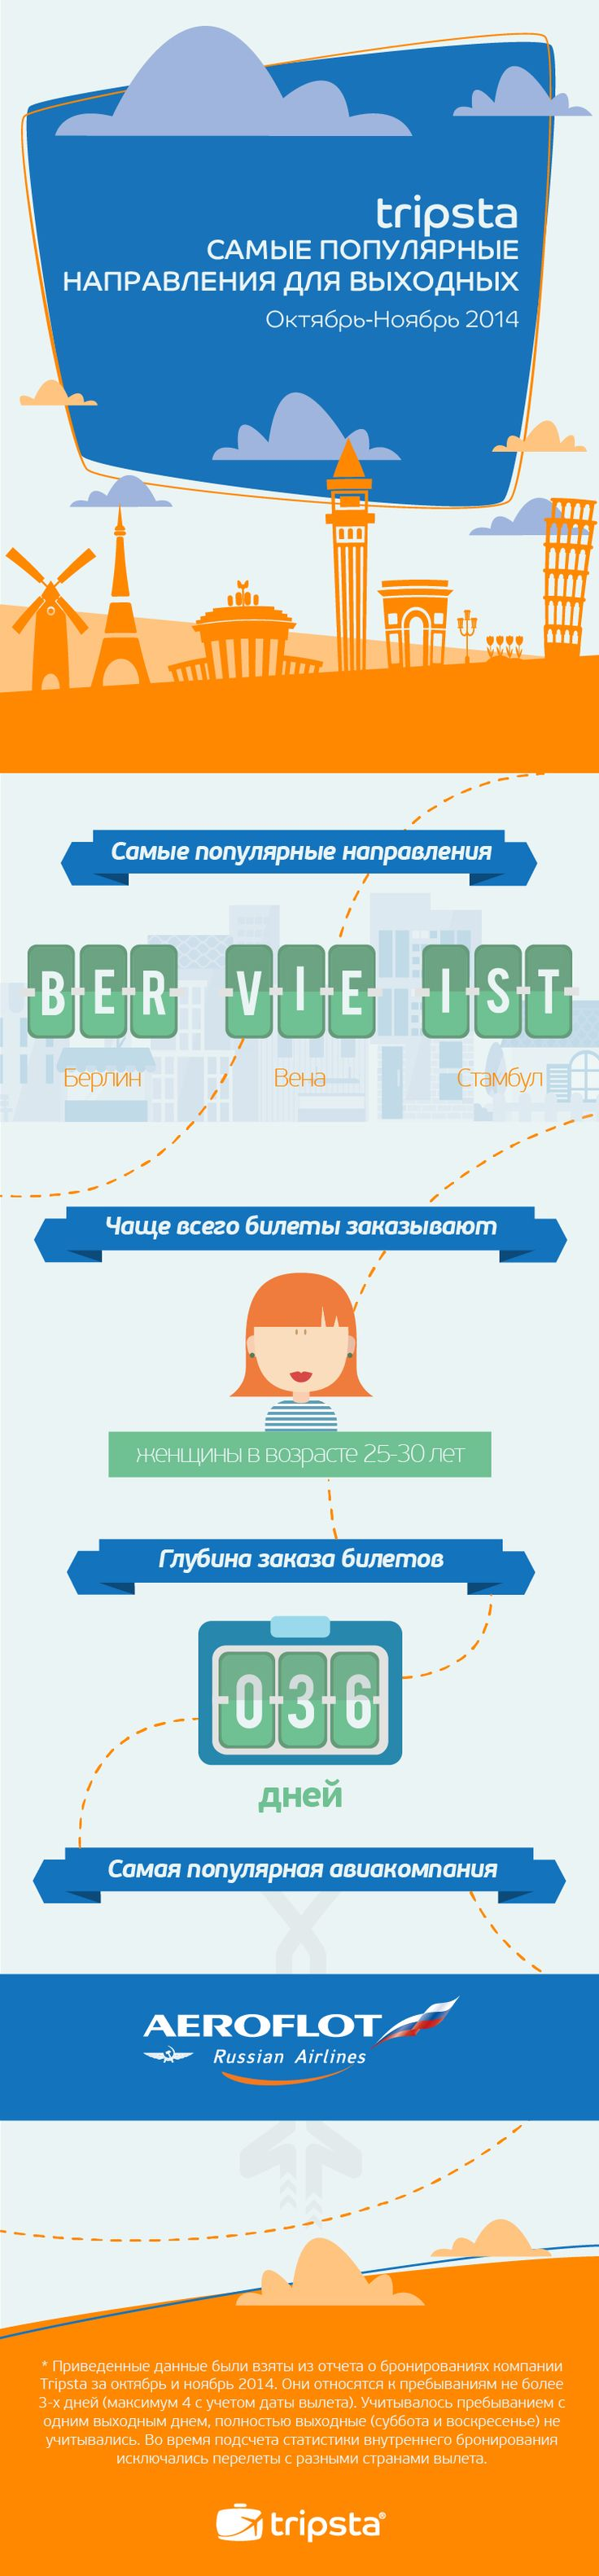 City Break Trends for Russians by Tripsta.ru #infographic #tripsta #trends #citybreaks